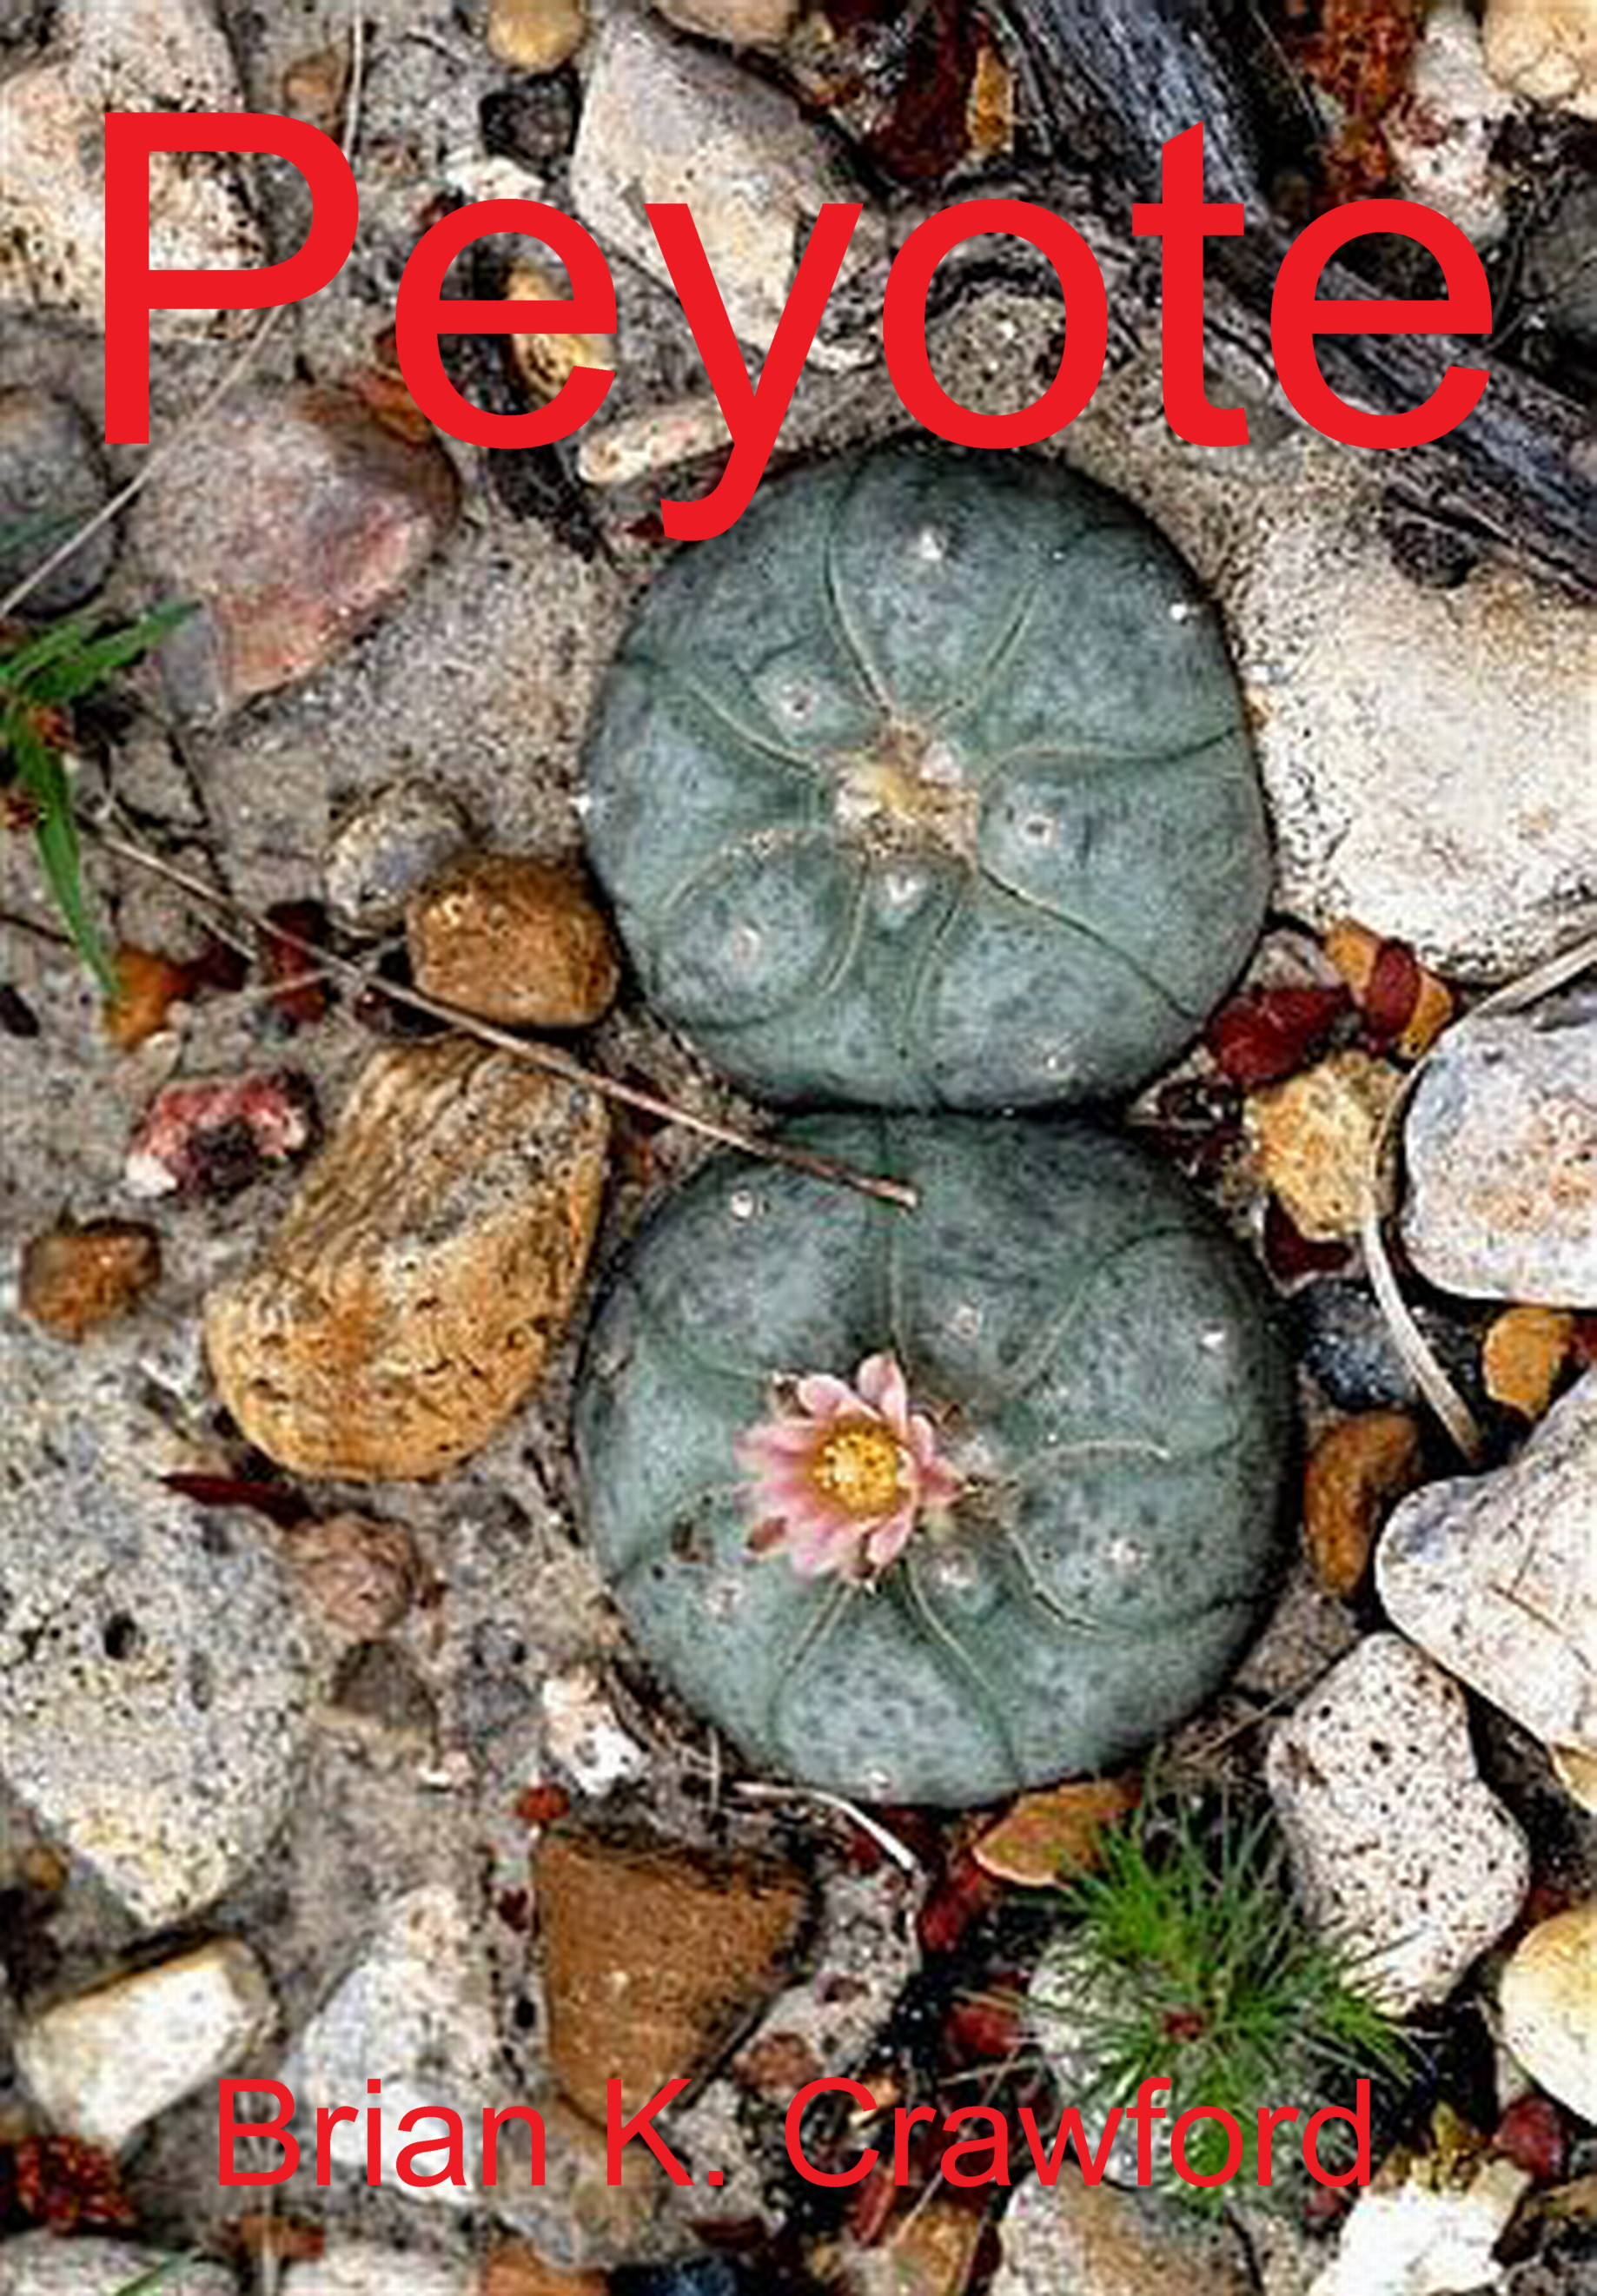 Cover of Peyote - a living button of Peyote